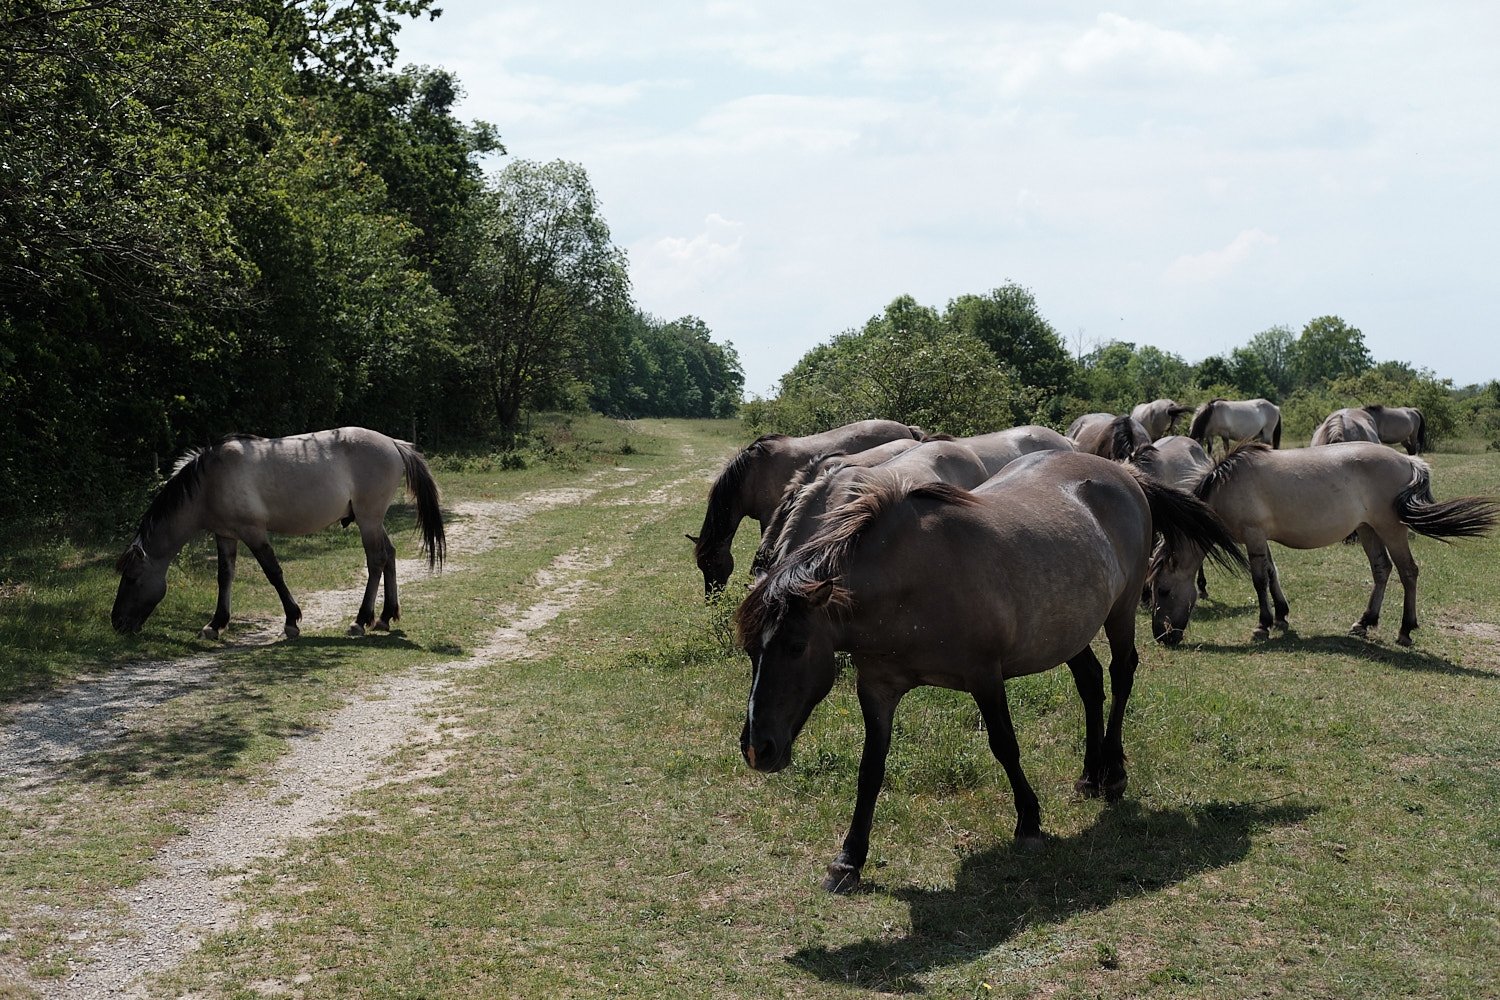 Freyburg, unused old east Germany army tank training grounds now home of grazing free horses